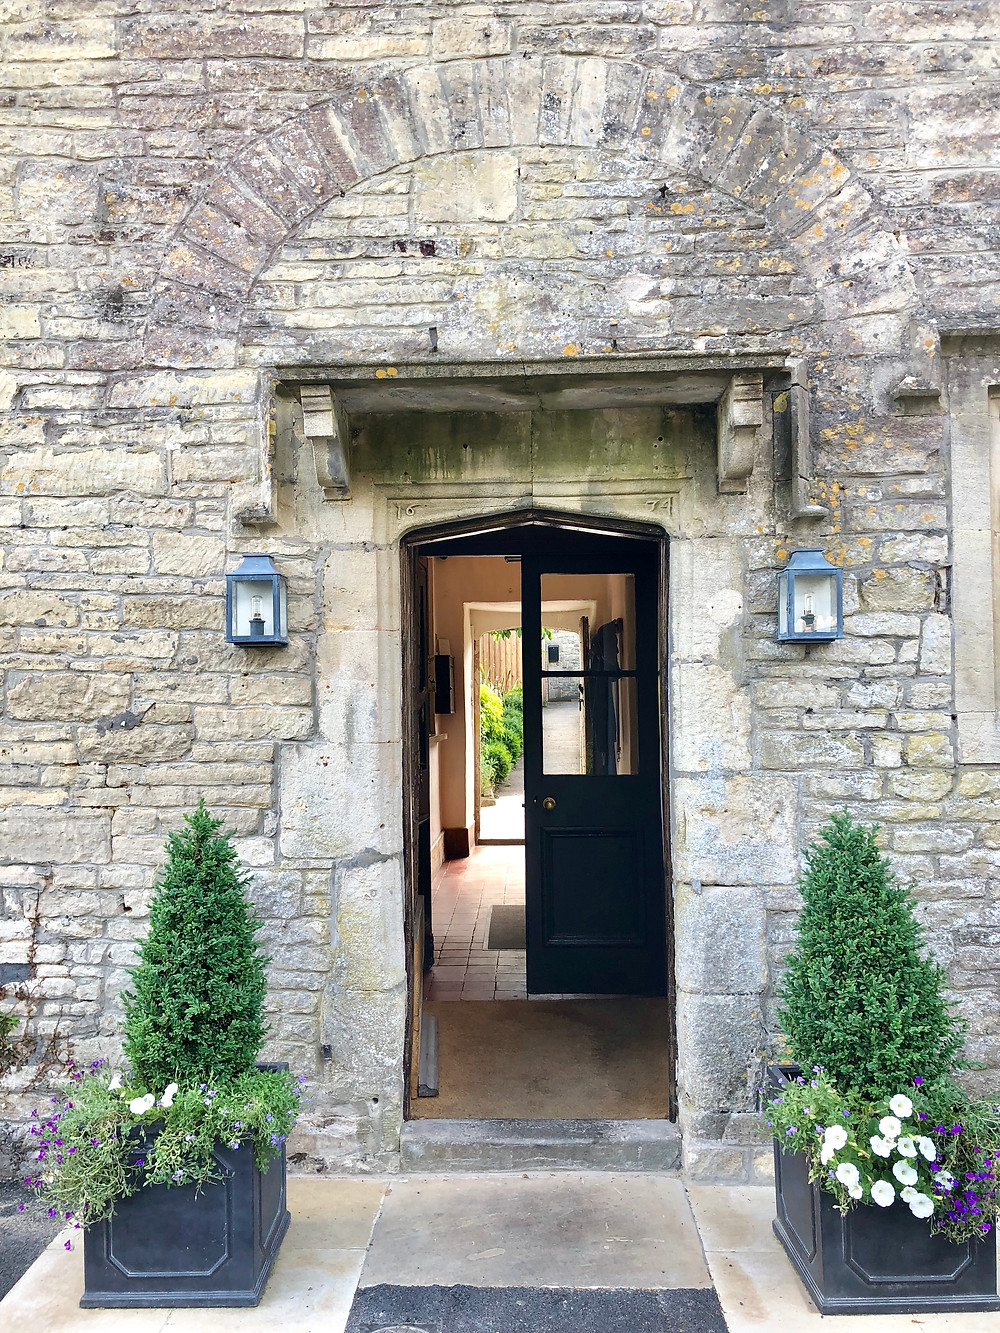 The Packhorse Bath, The Packhorse pub South Stoke, Somerset cool, pubs in Somerset, cool places in Somerset, Somerset cool, Somerset blog, Somerset blogger, Somerset bloggers, best blog in Somerset, best pubs in Somerset, gastro pubs in Somerset